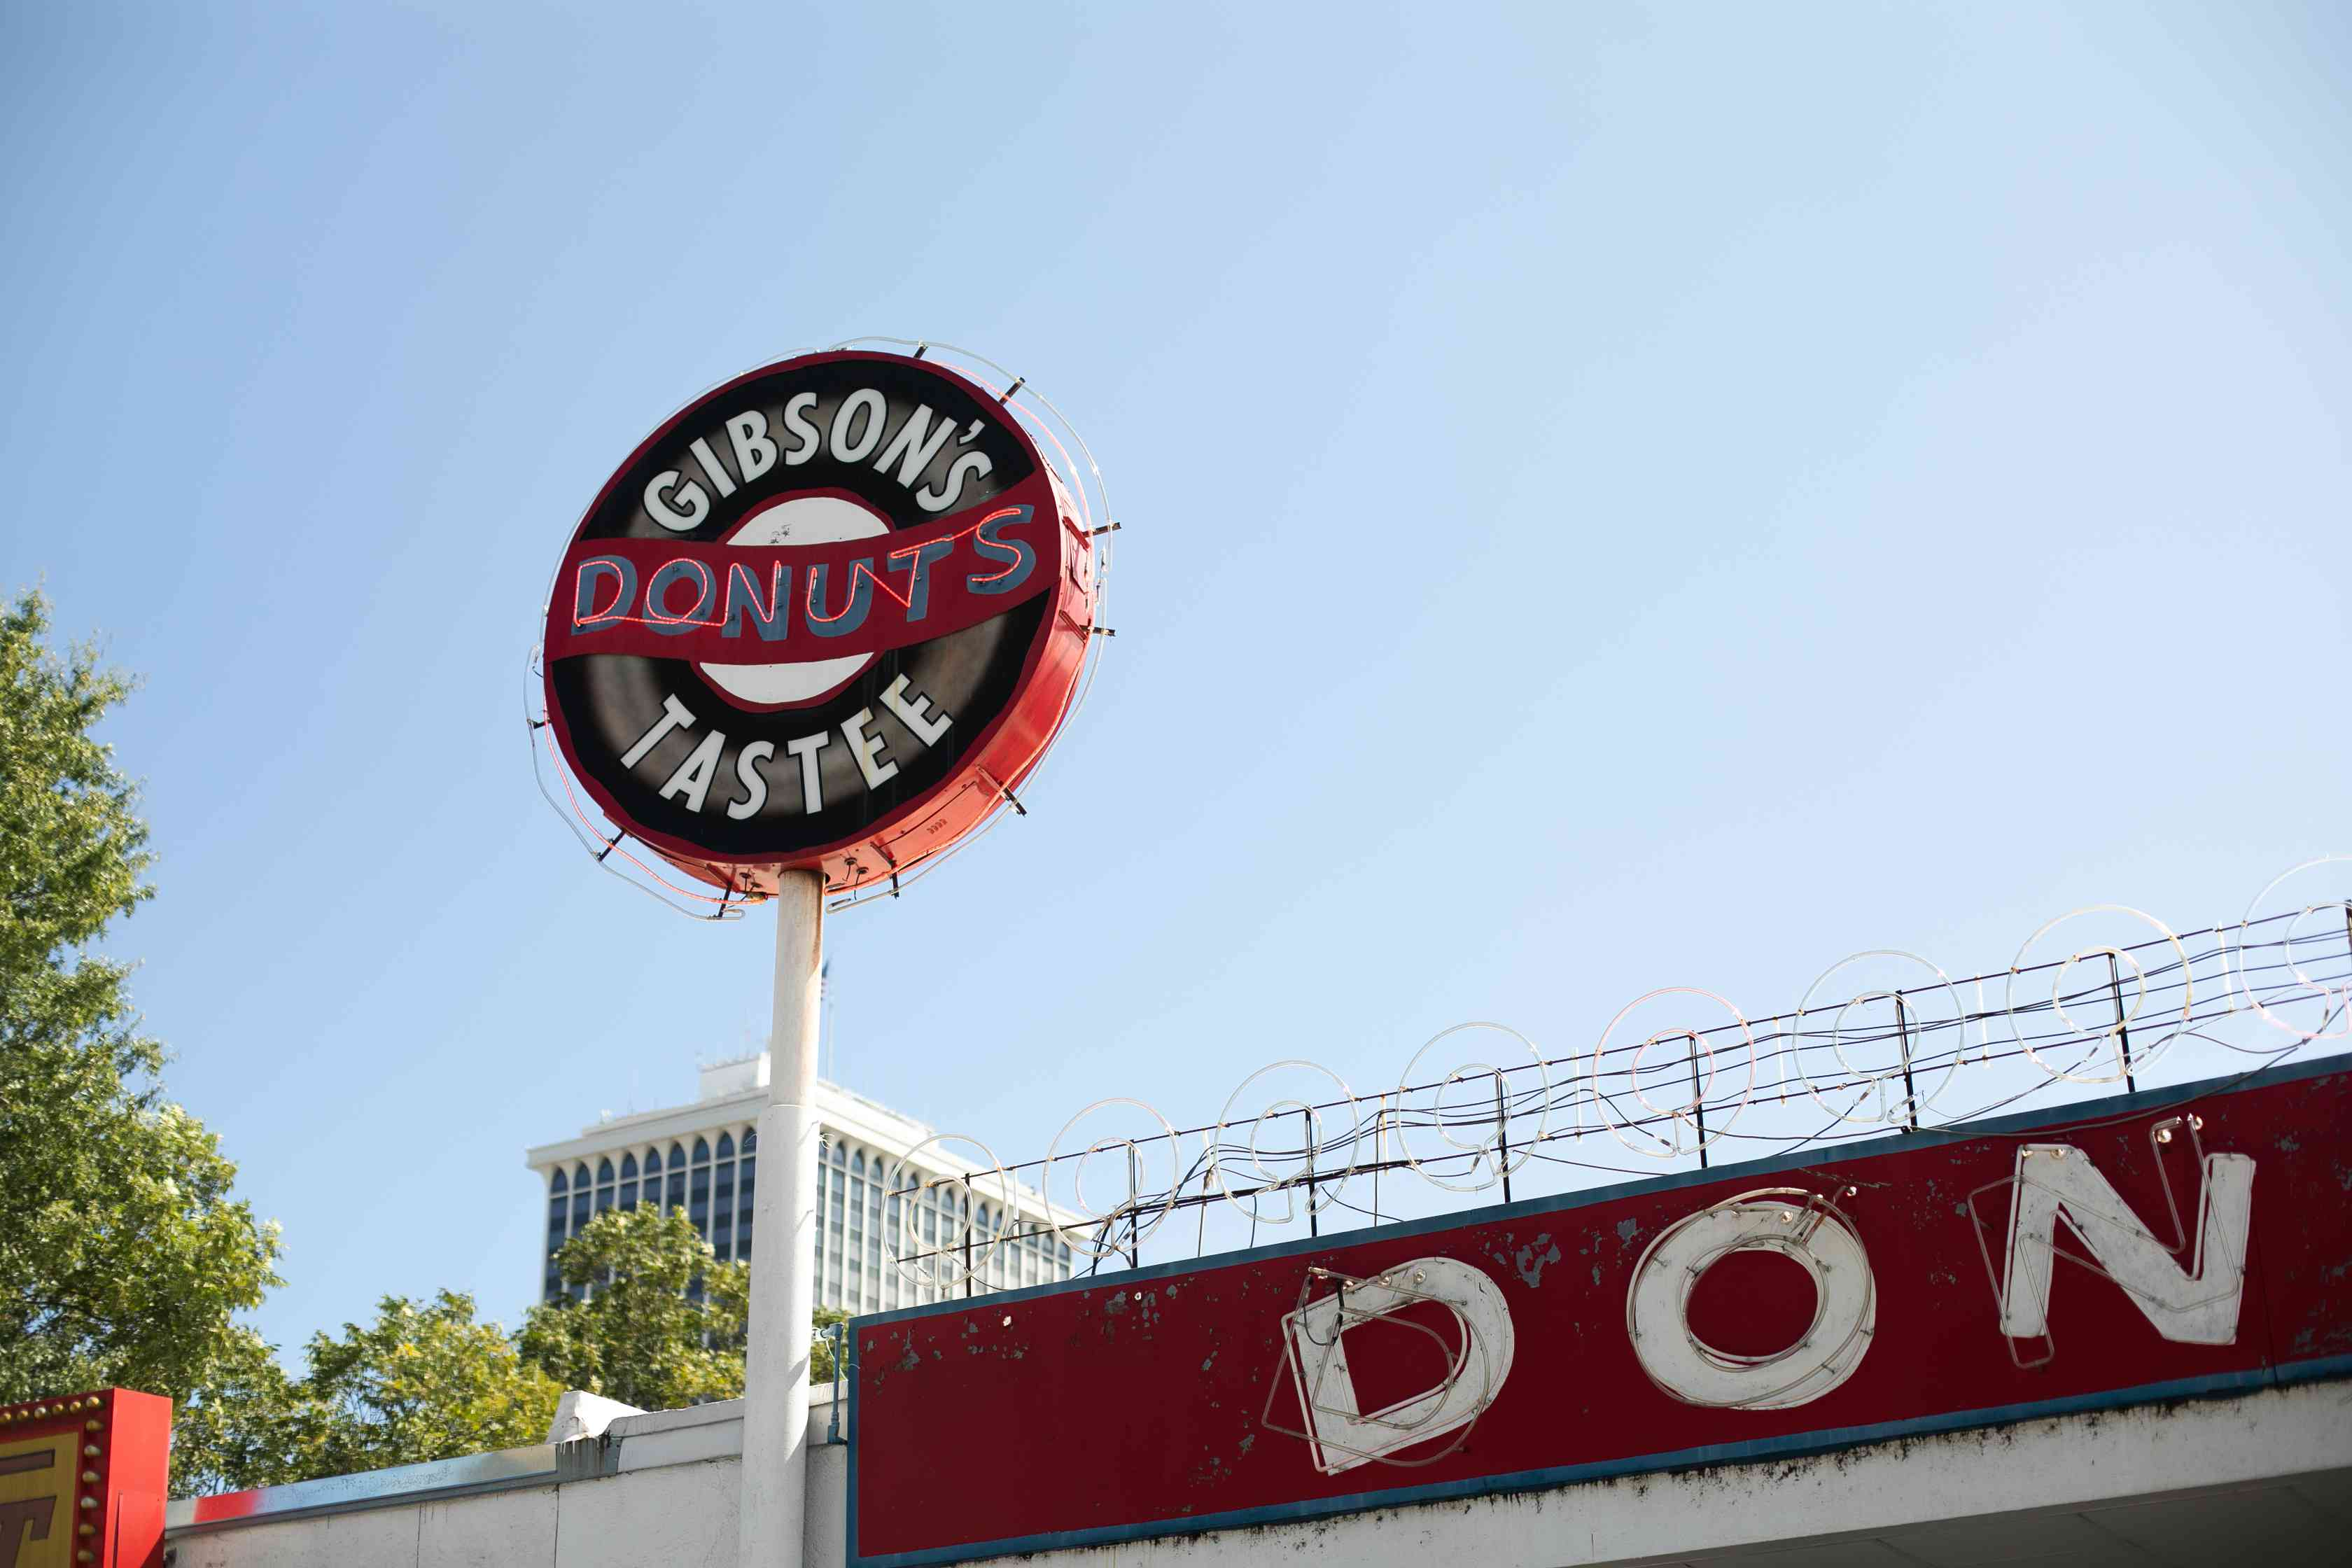 Gibson's Donuts in Memphis, Tennessee